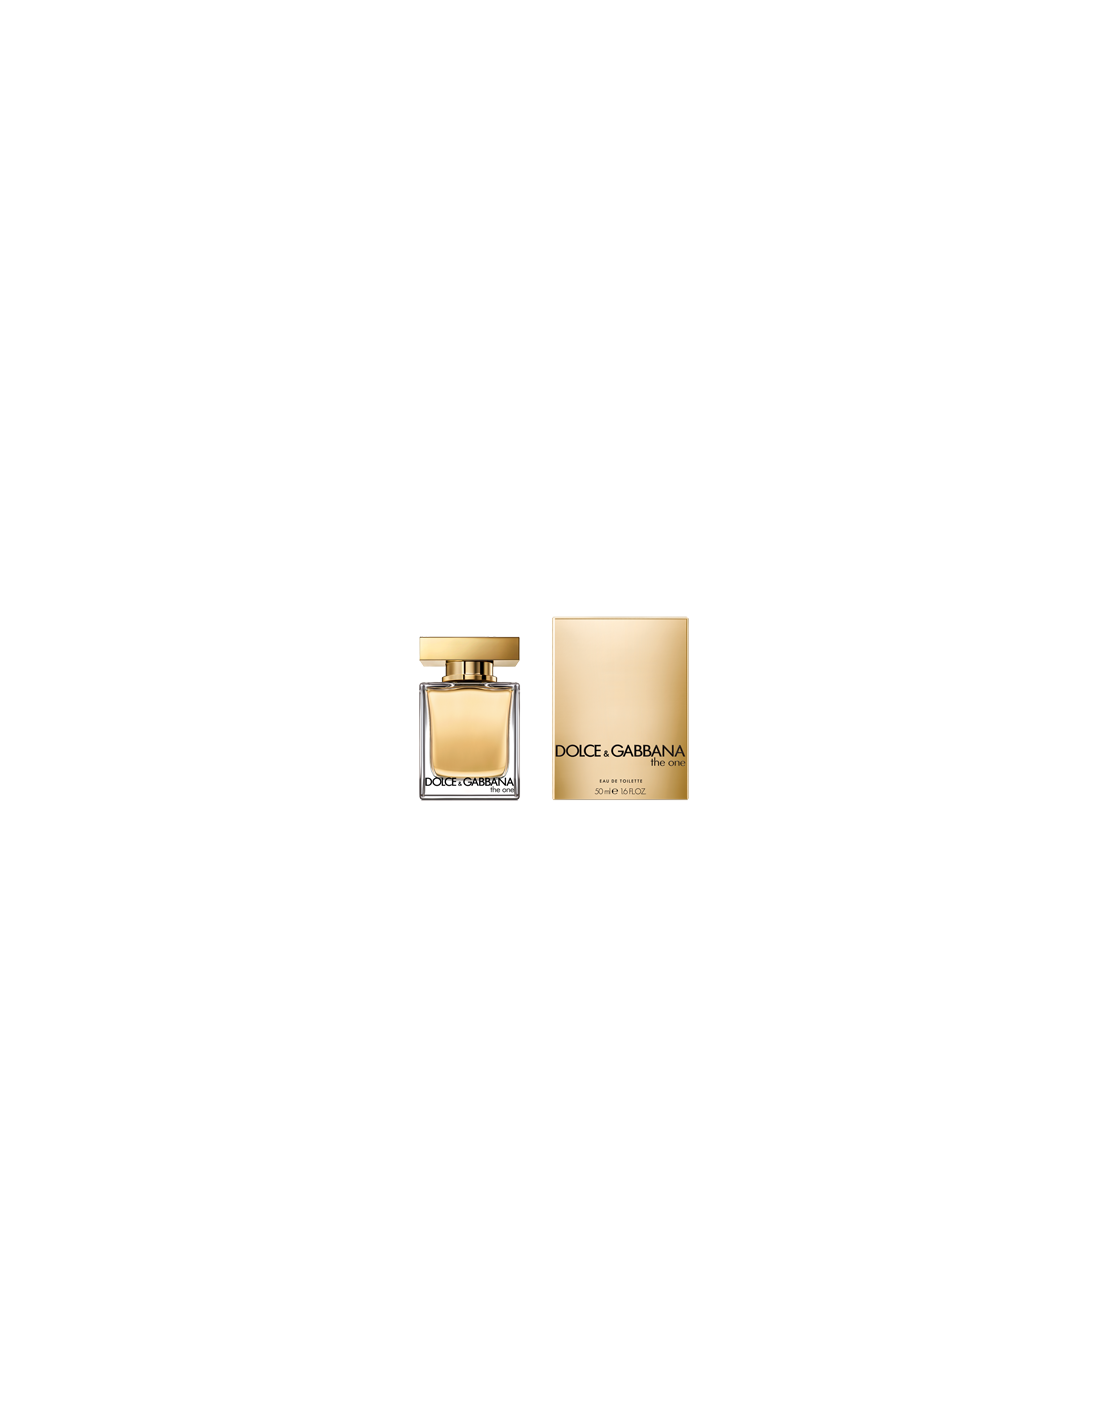 Dolce   Gabbana The One Eau de Toilette 50ml à venda na Perfumes 24 ... 257354a737